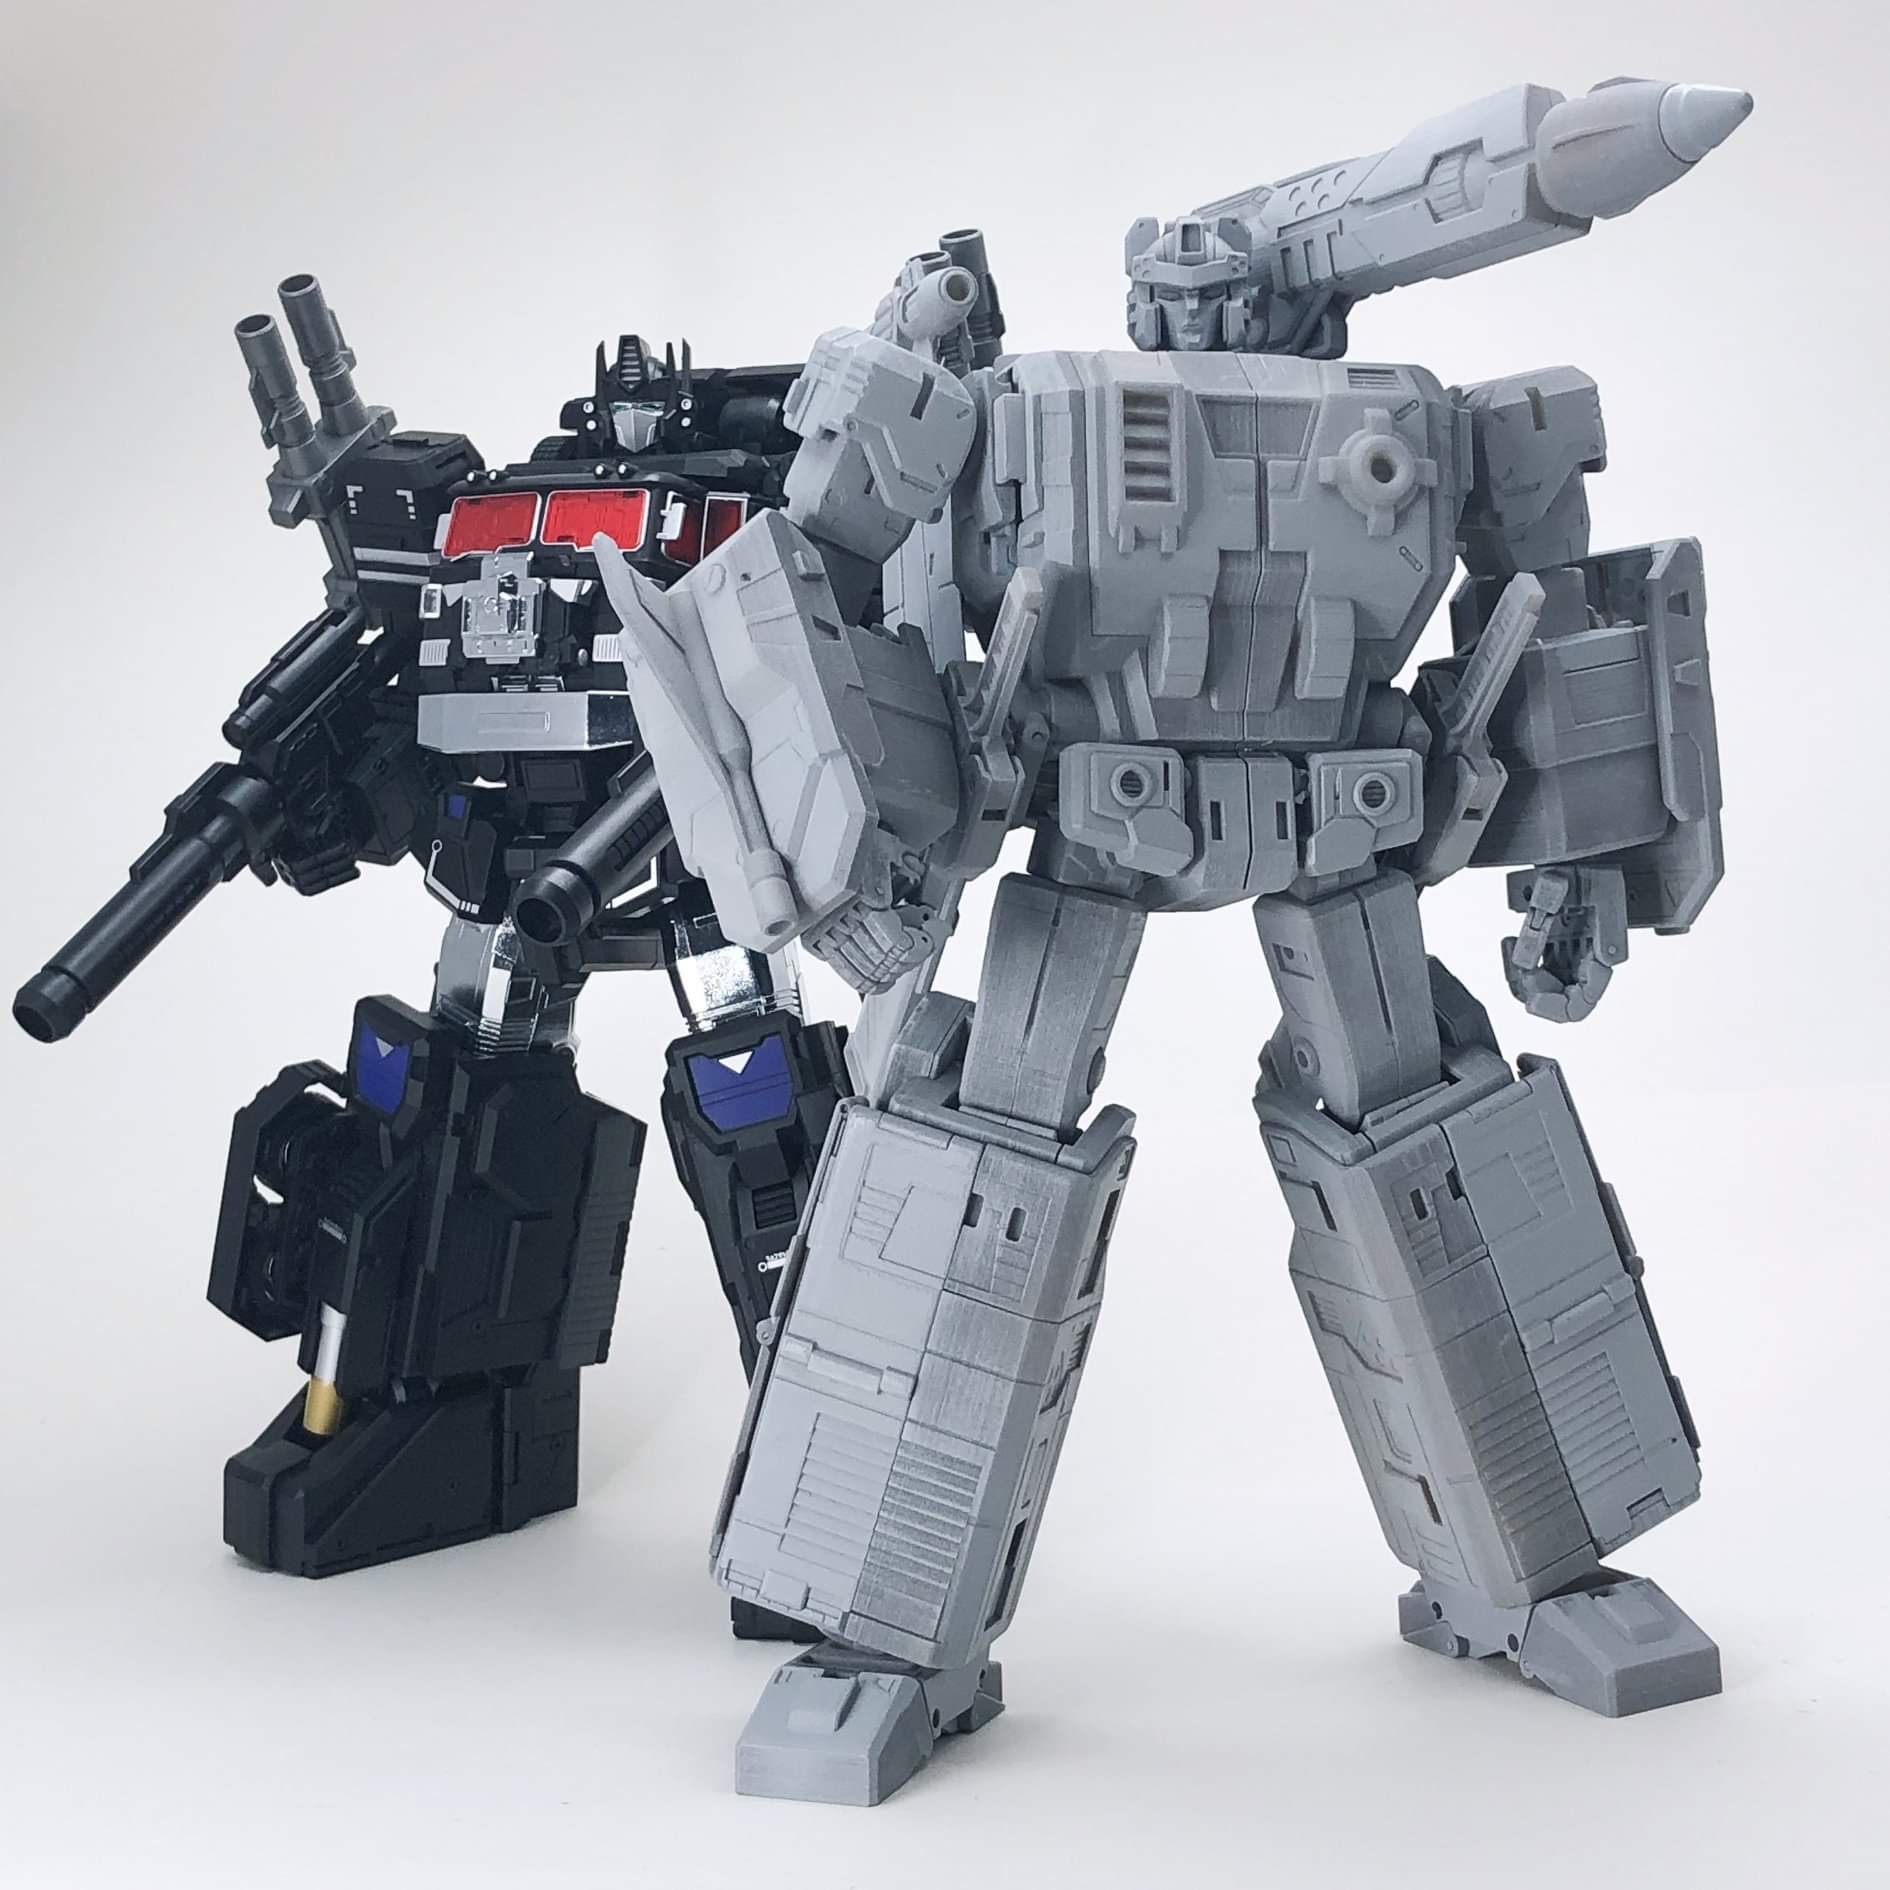 [FansHobby] Produit Tiers - MB-06 Power Baser (aka Powermaster Optimus) + MB-11 God Armour (aka Godbomber) - TF Masterforce - Page 3 MpmMOnGa_o